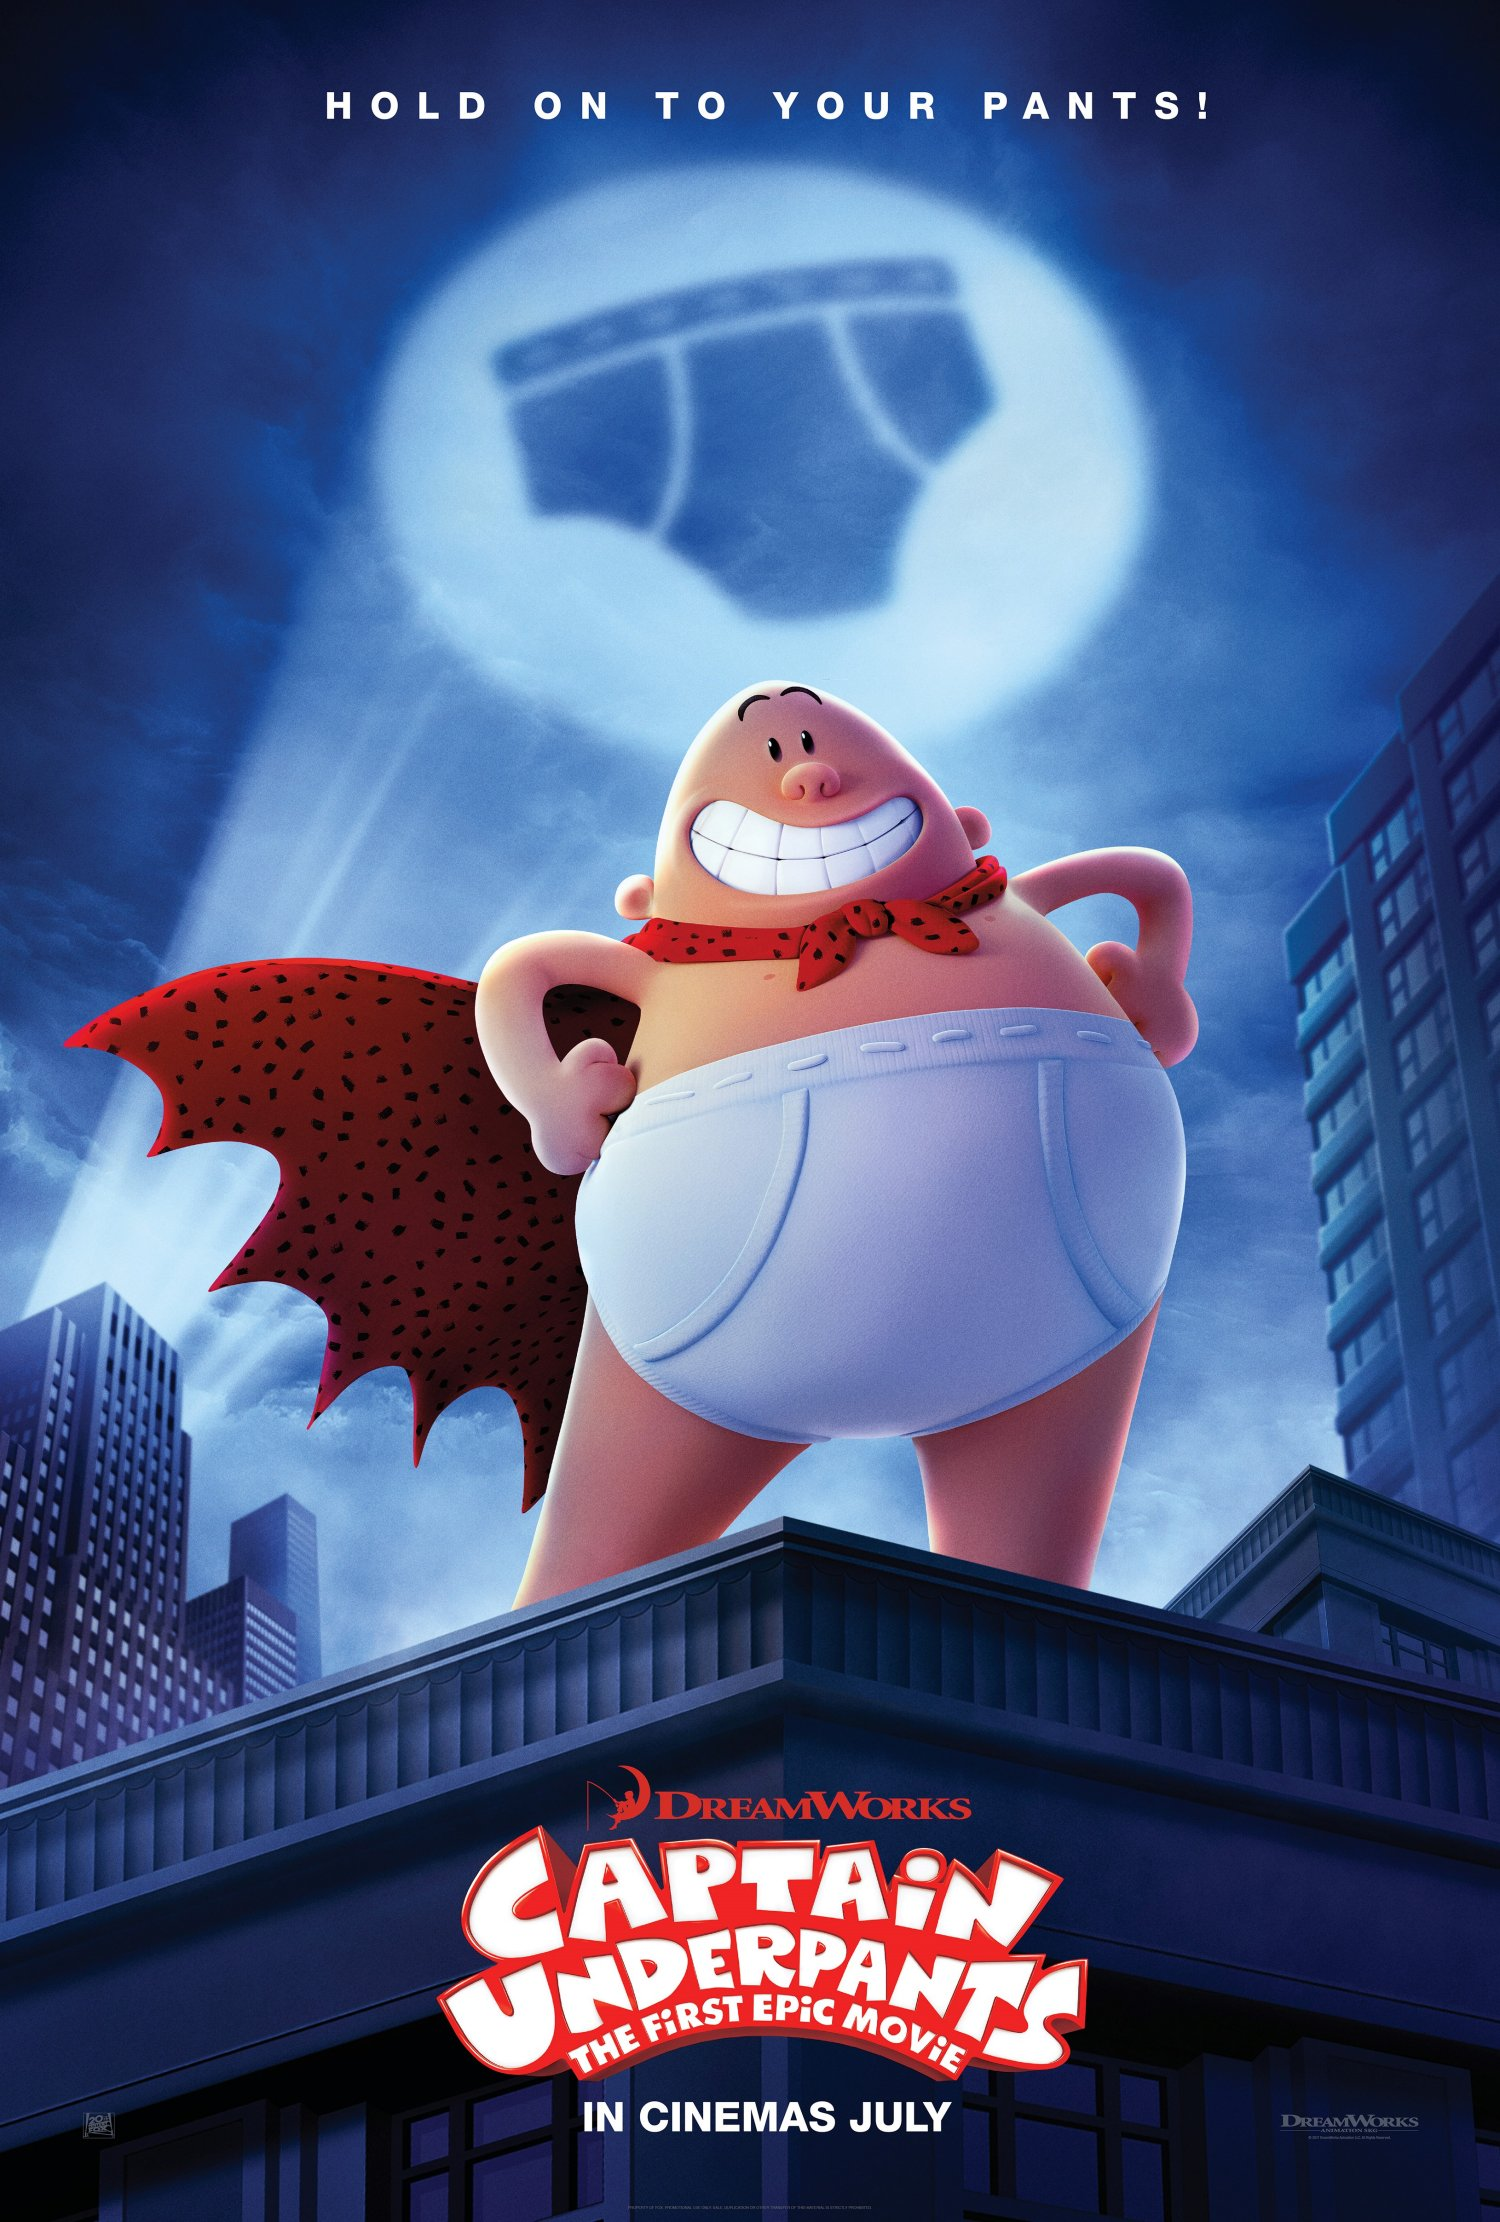 Captain Underpants New Teaser One Sheet